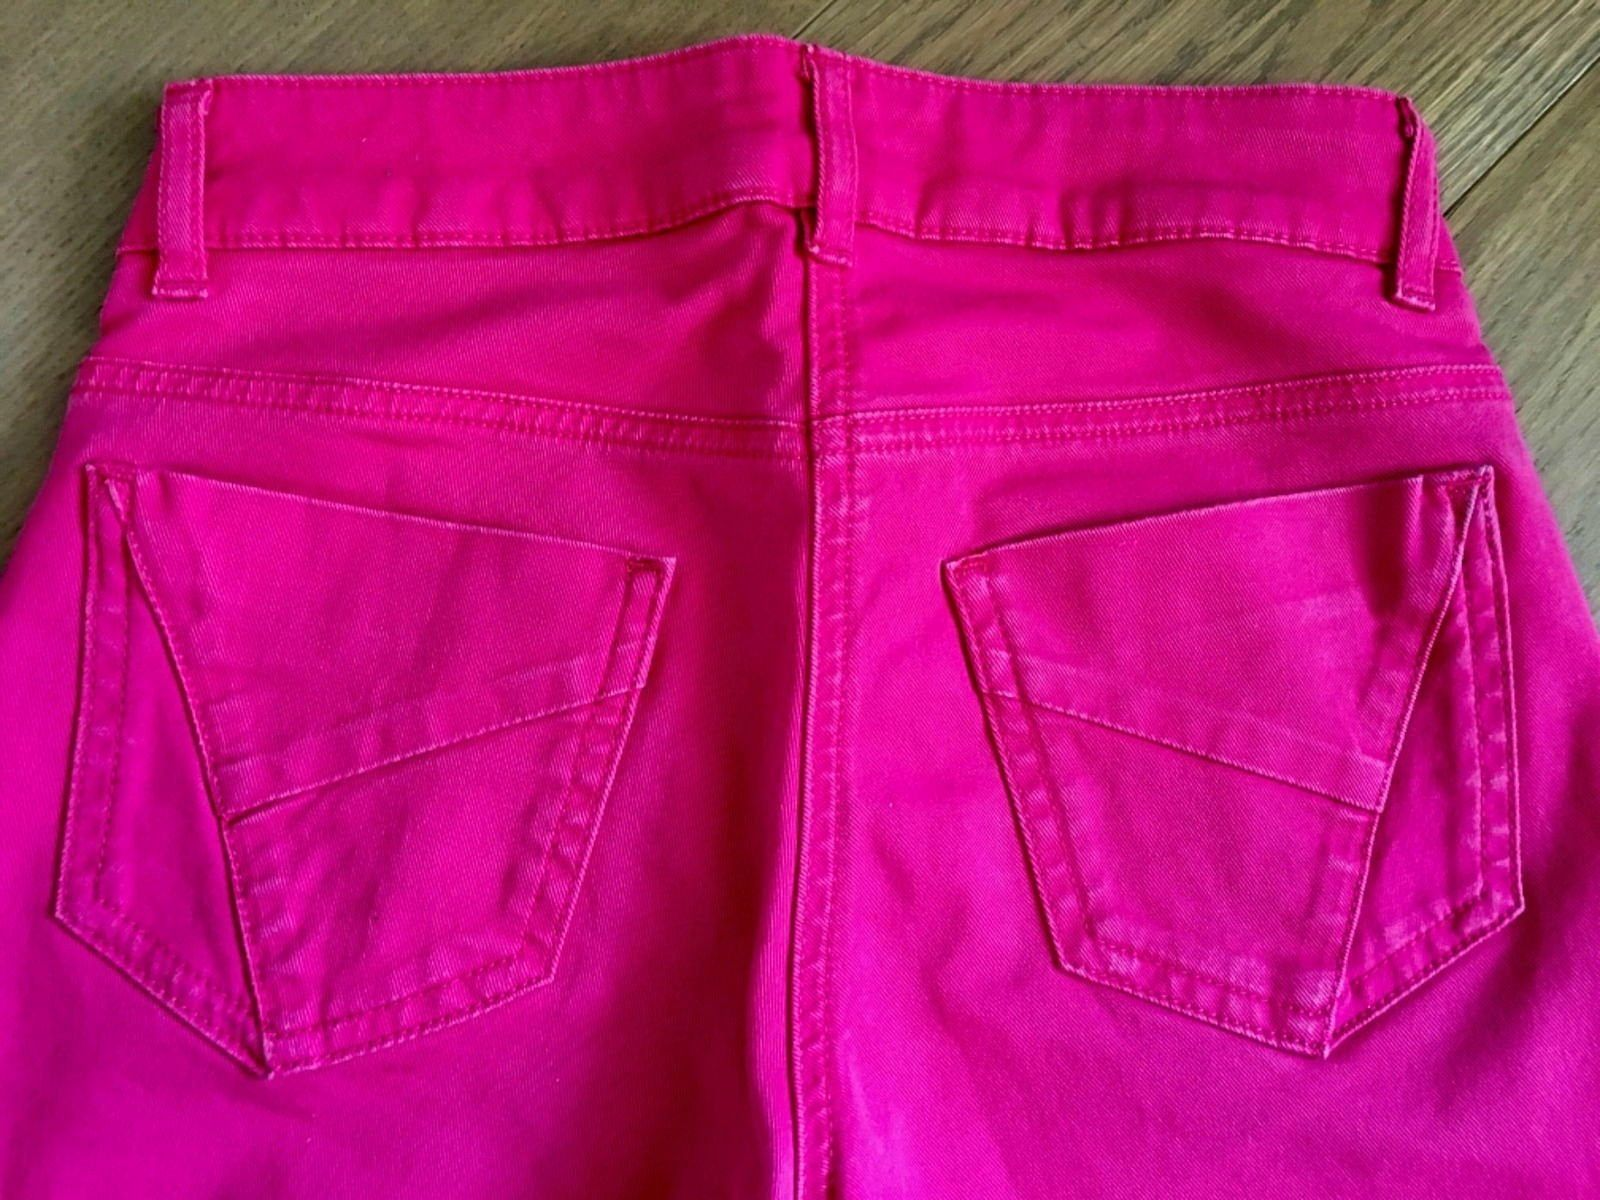 Jean stretch taille basse rose Kookai Taille 34